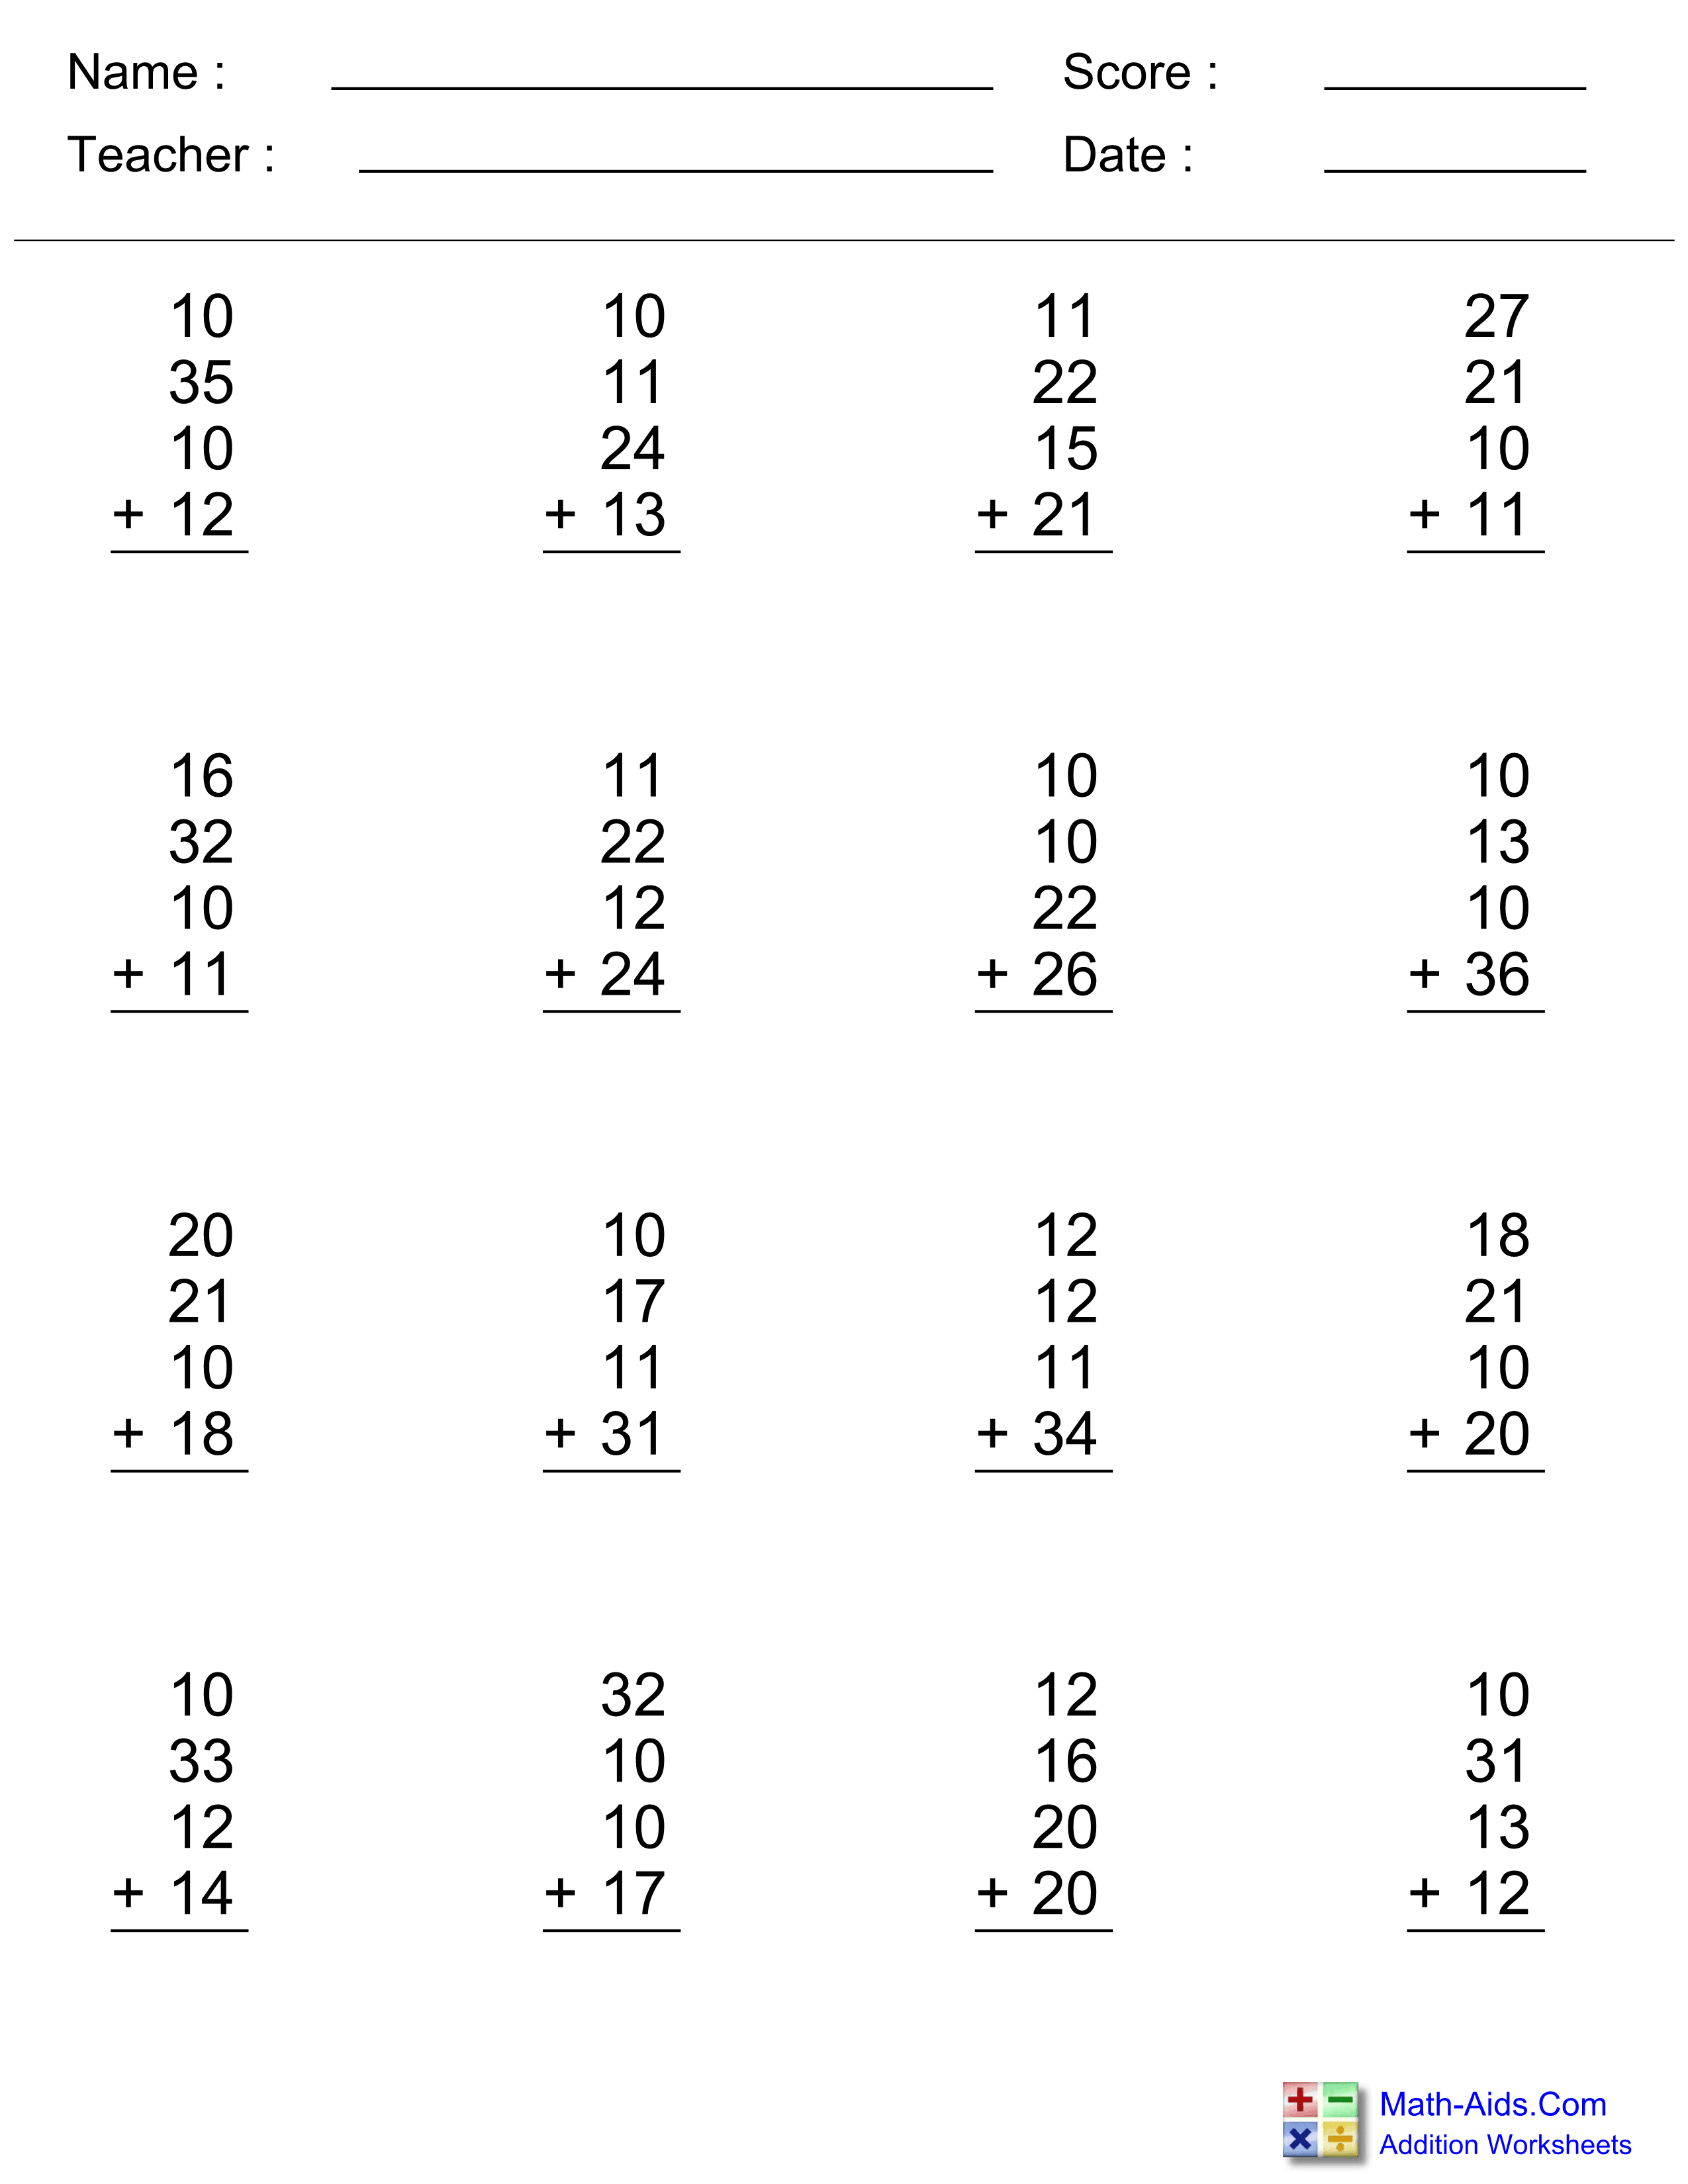 Addition Worksheets | Dynamically Created Addition Worksheets | Printable Addition Worksheets